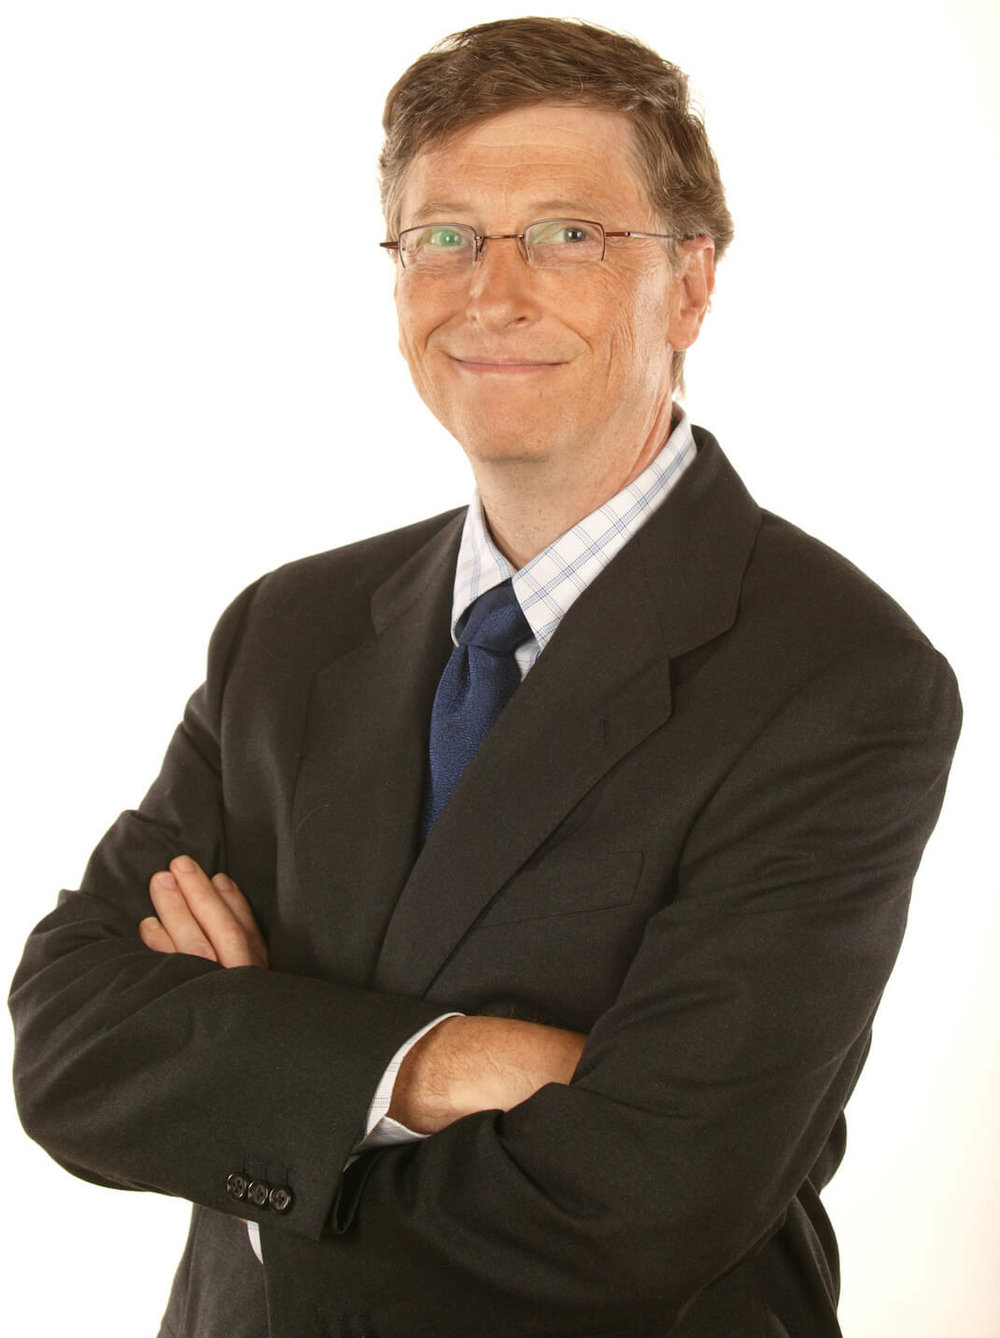 Bill Gates - Born: October 28th, 1955 in Seattle, WashingtonNet Worth: $96.5Bn (March 2019)Founder of Microsoft and Co-Chair of the Bill & Melinda Gates Foundation